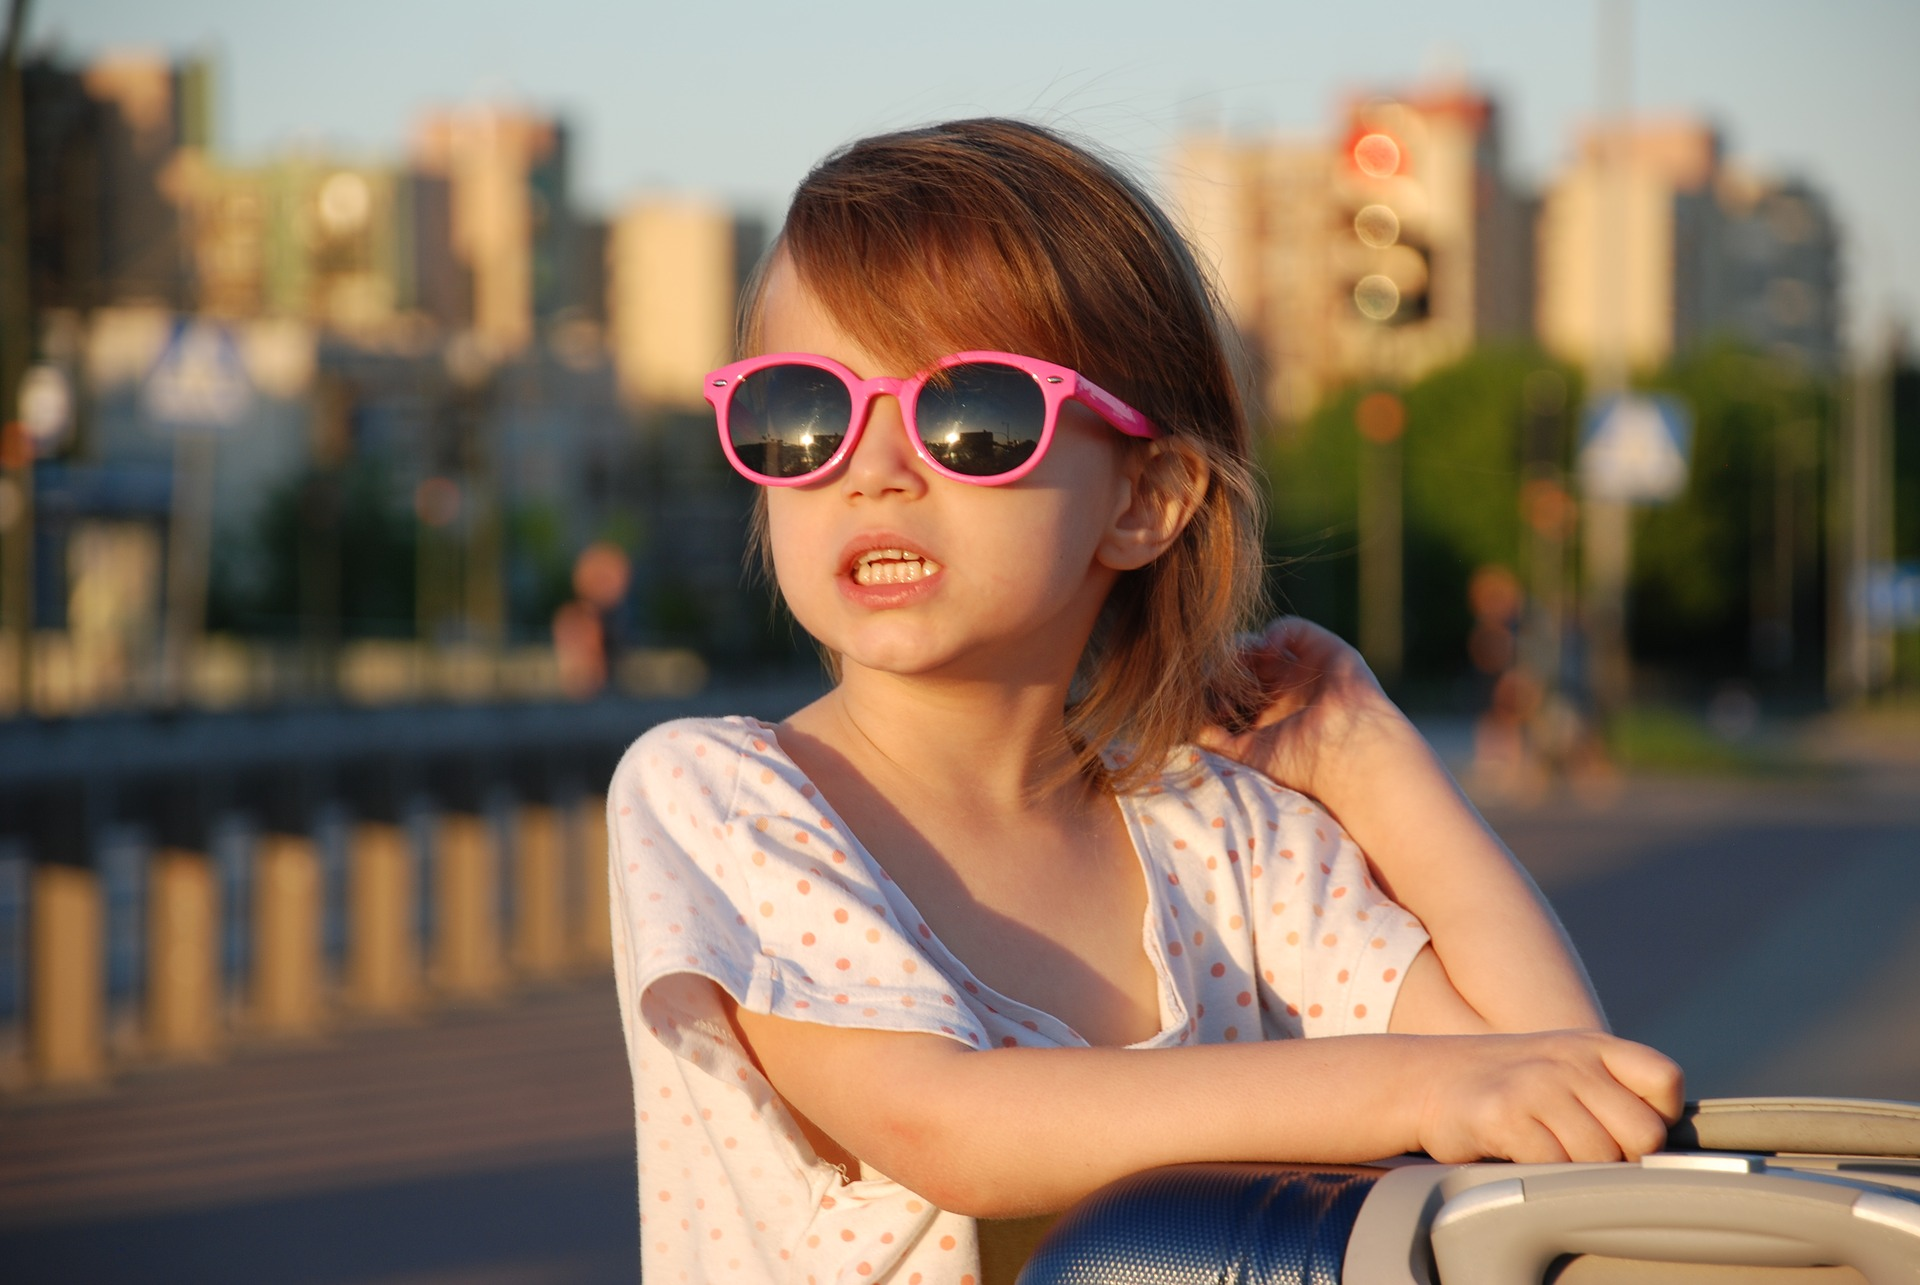 Little Girl on Sunglasses | Kids Car Donations